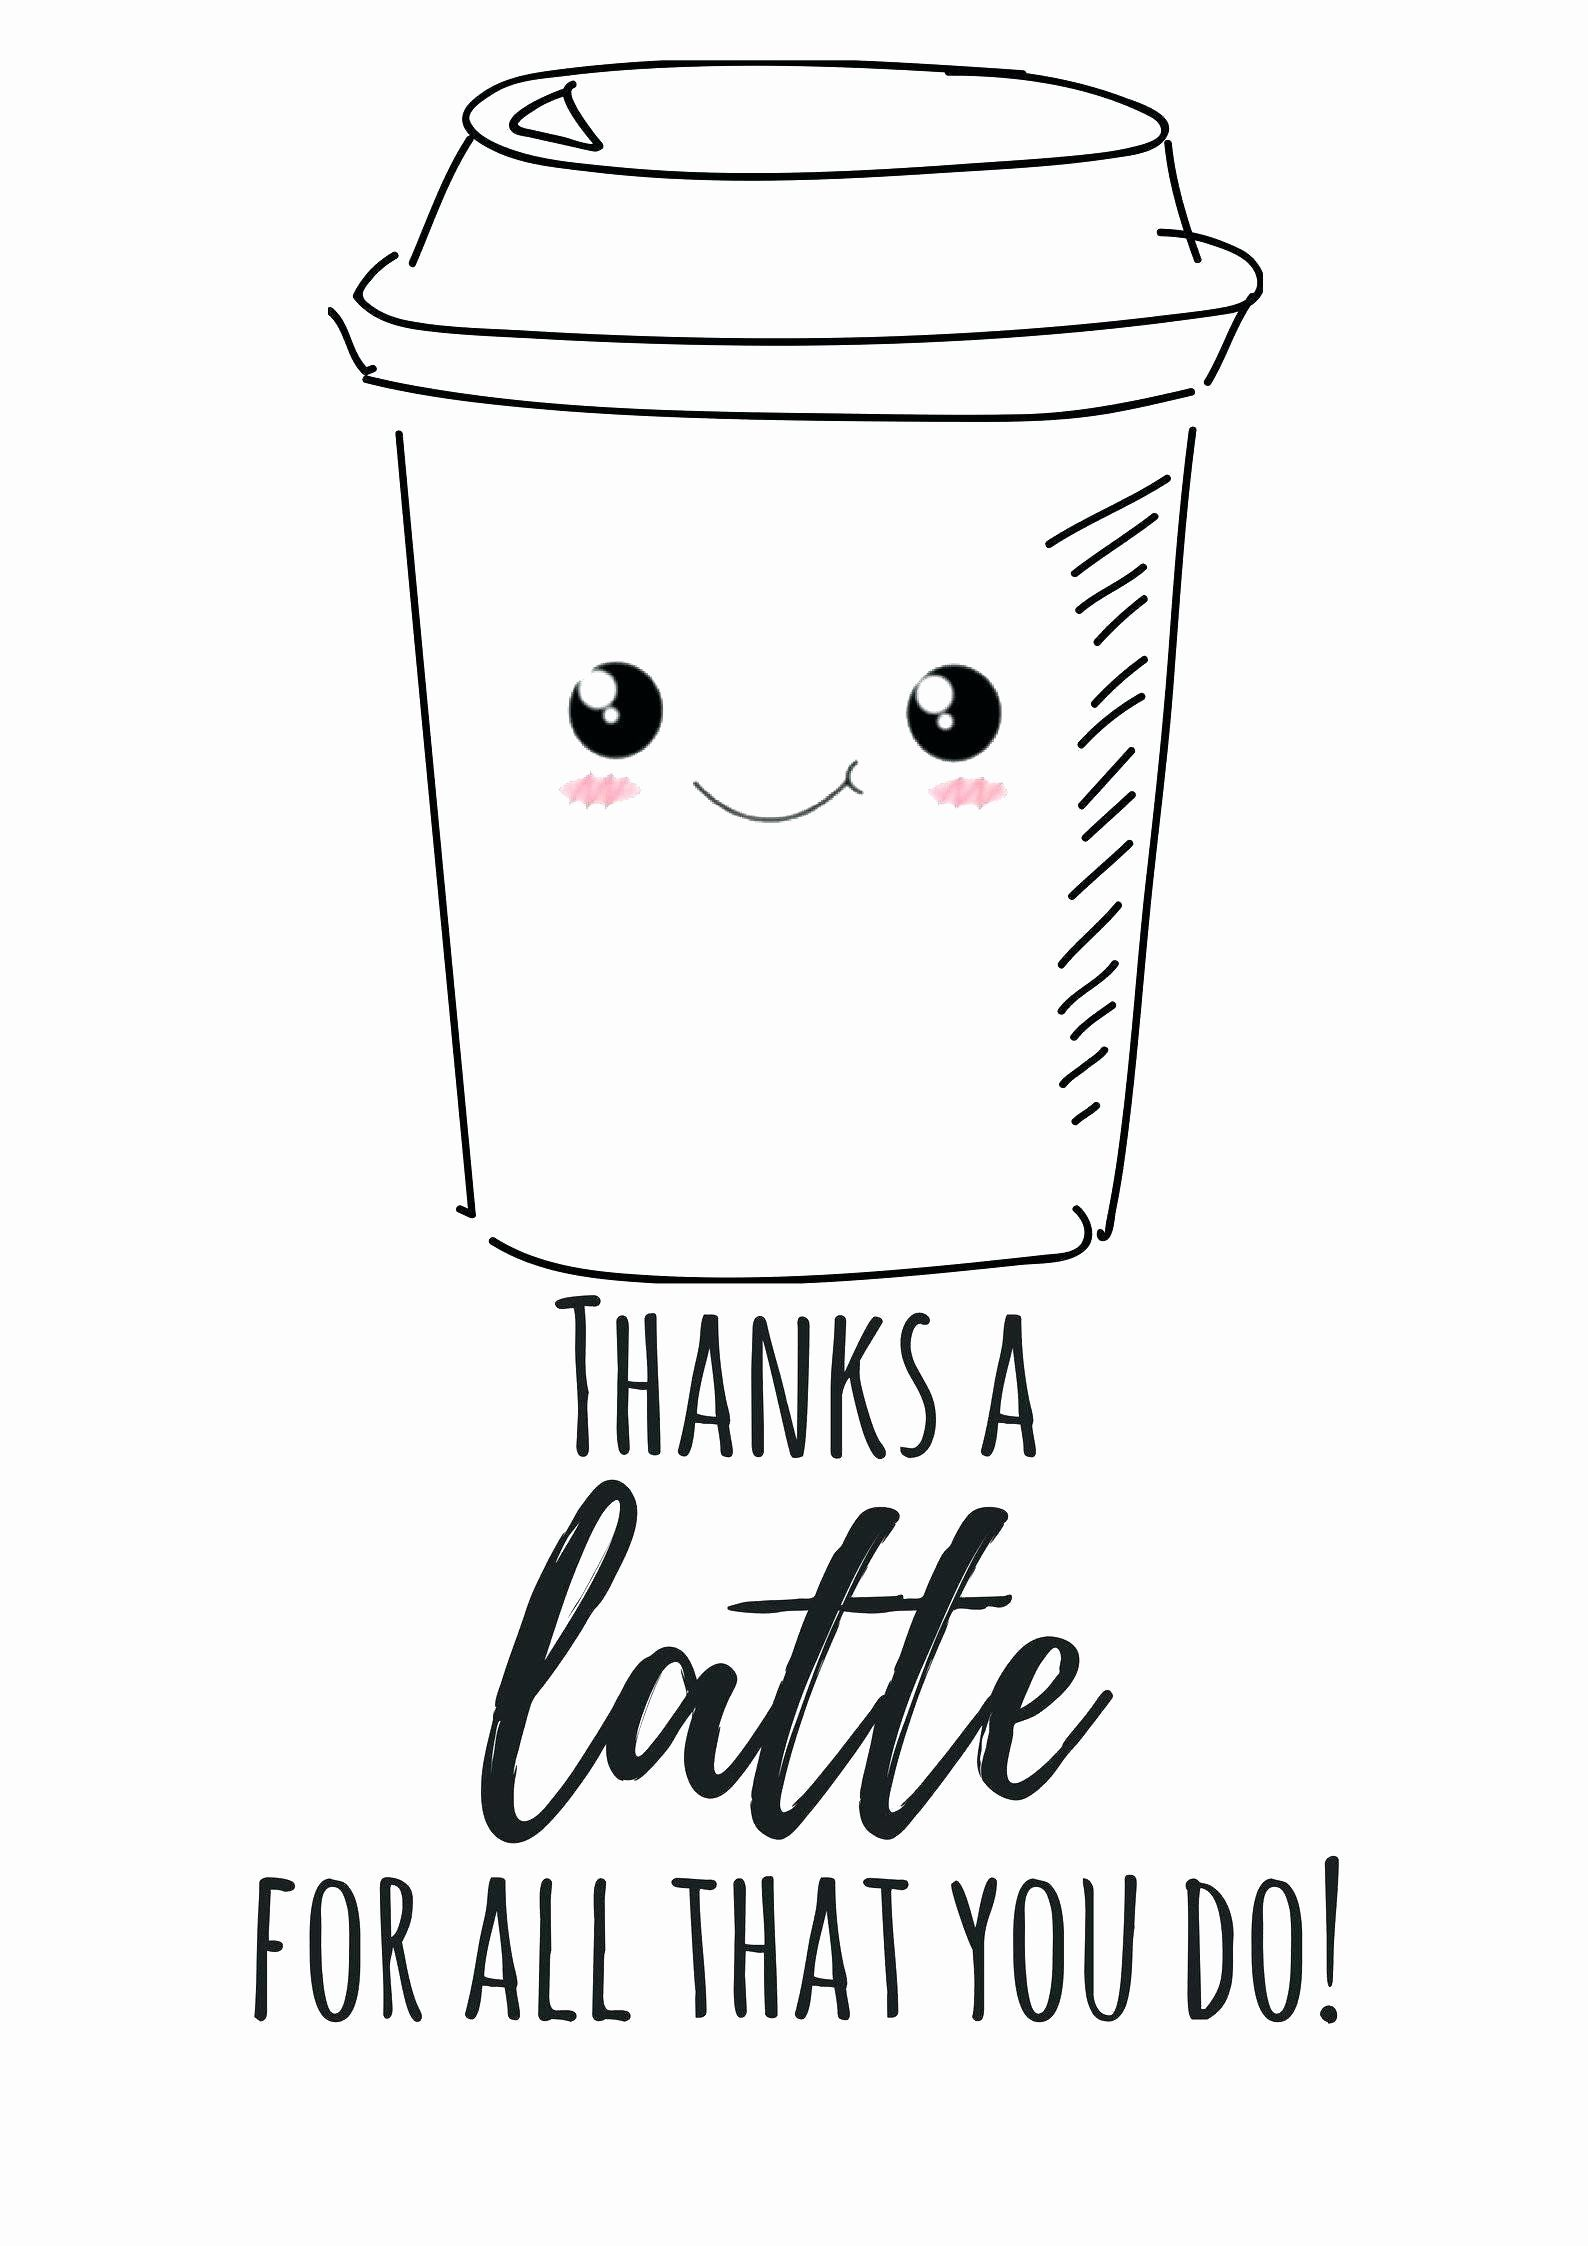 Printable Coloring Thank You Cards Elegant Chuck E Cheese Coloring Pages Mayhemcolor Funny Thank You Cards Appreciation Thank You Free Thank You Cards